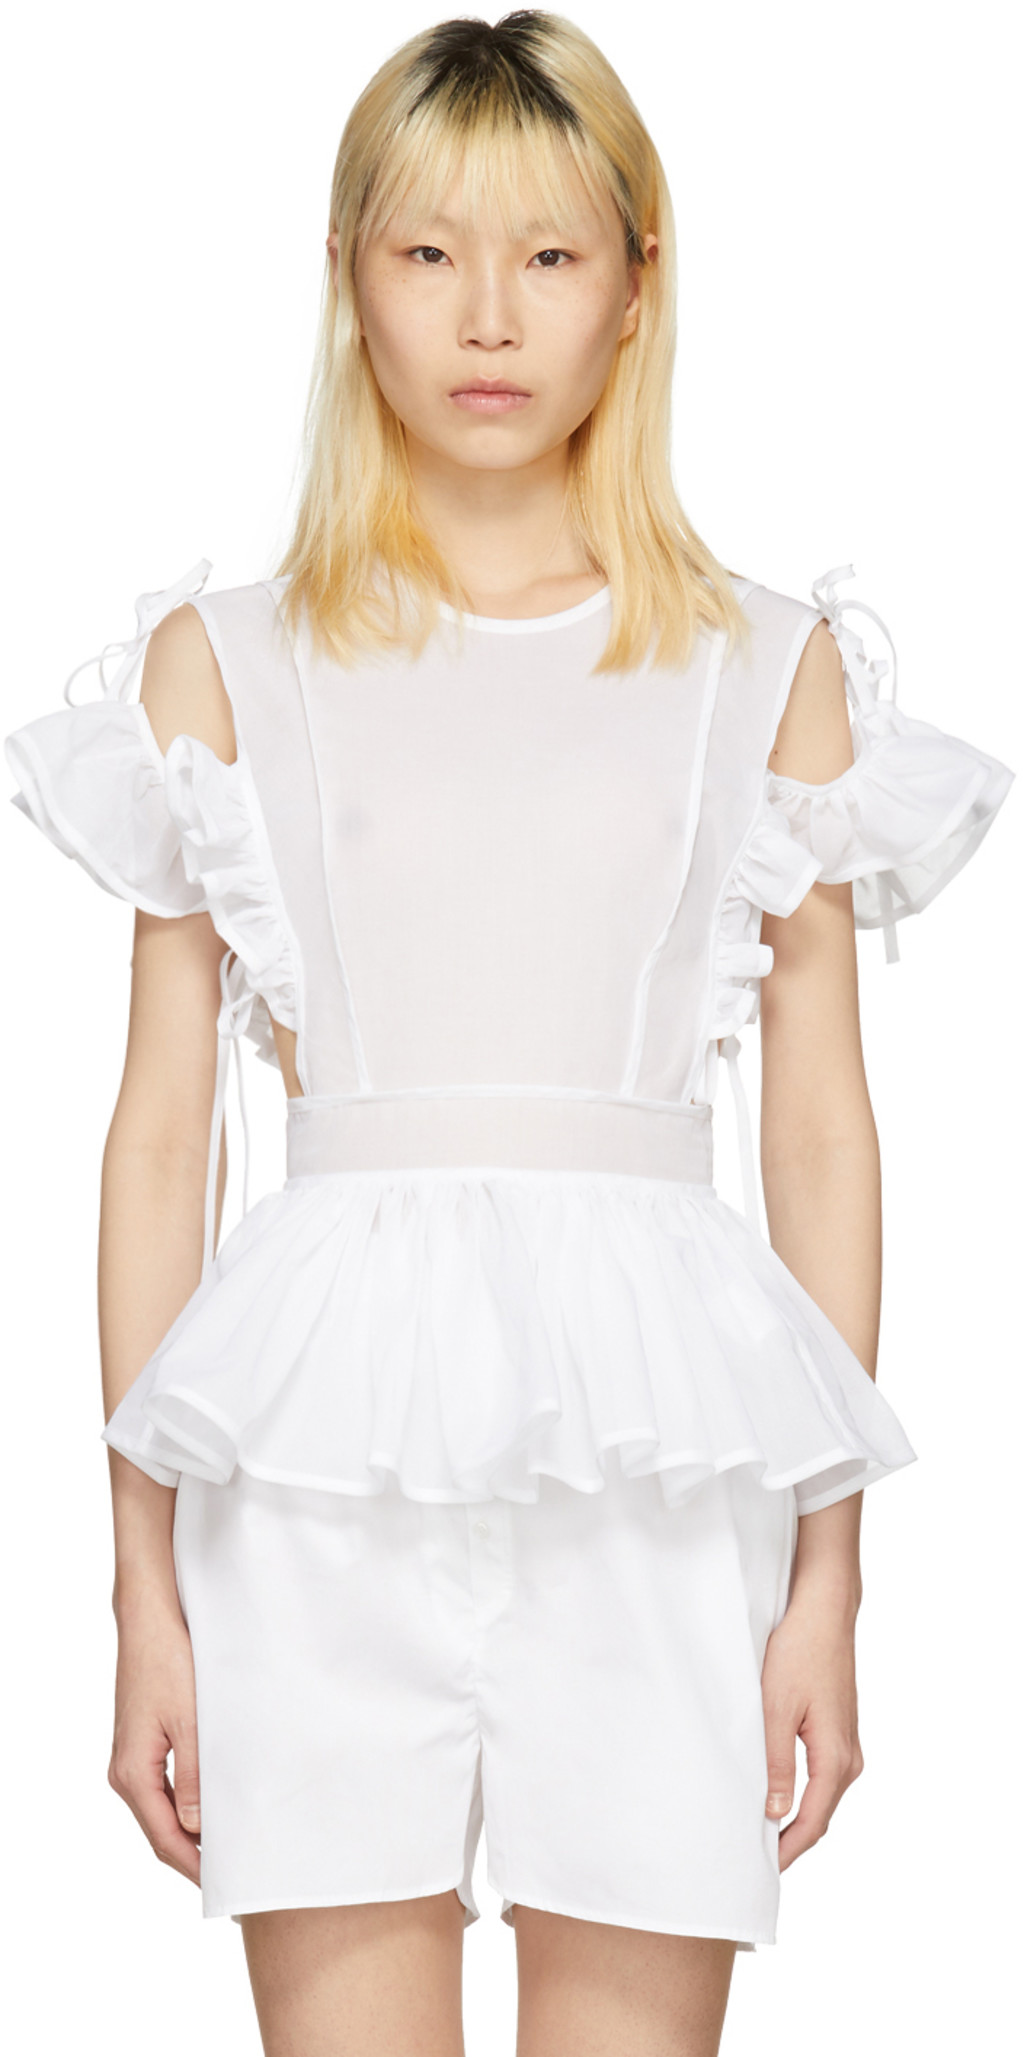 White Cornelia Sailor Bib Blouse Cecilie Bahnsen Visa Payment Cheap Online Cheap Sale Explore Outlet Fashion Style Authentic Cheap Online lTe5s